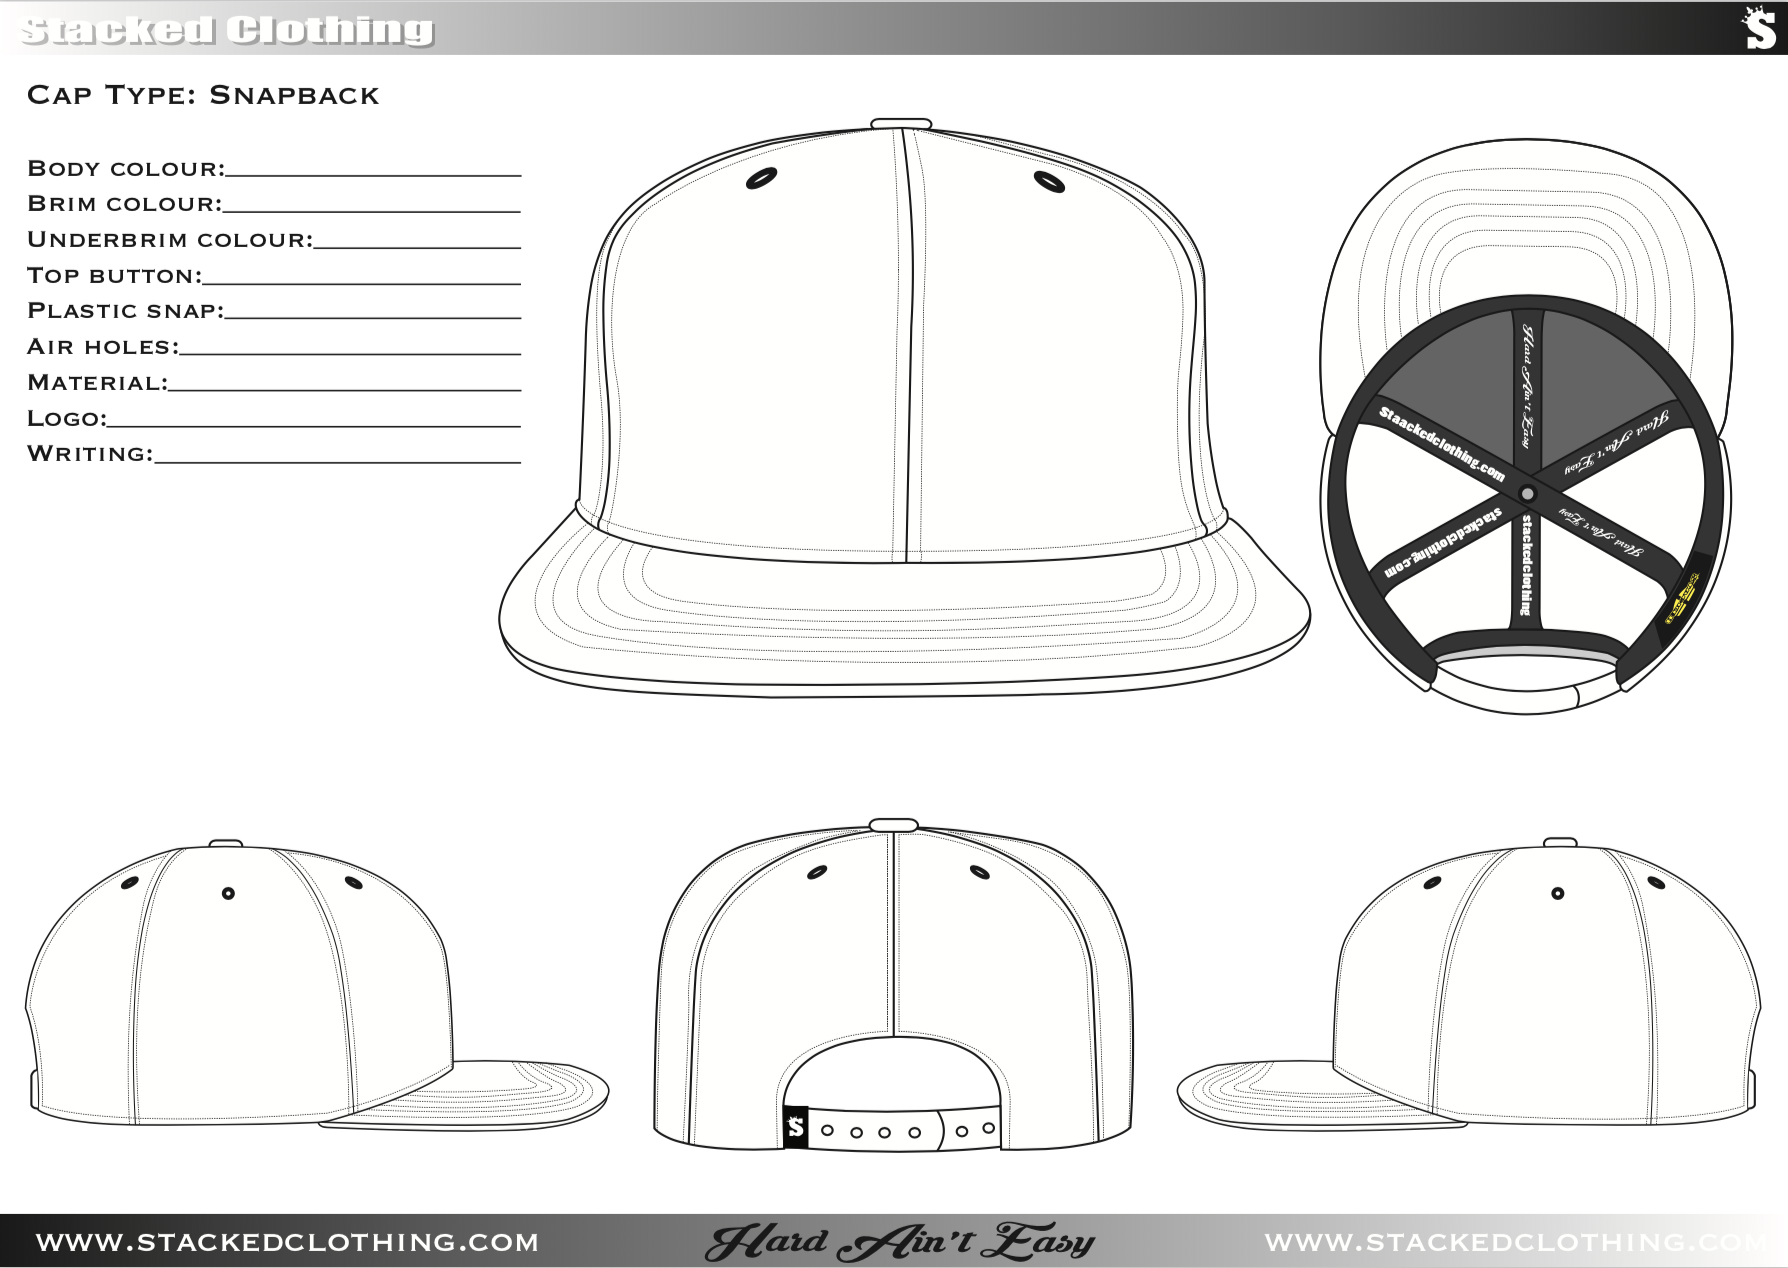 Snapback Template Stacked Clothing 2019 Cap Designs Dad Caps Design